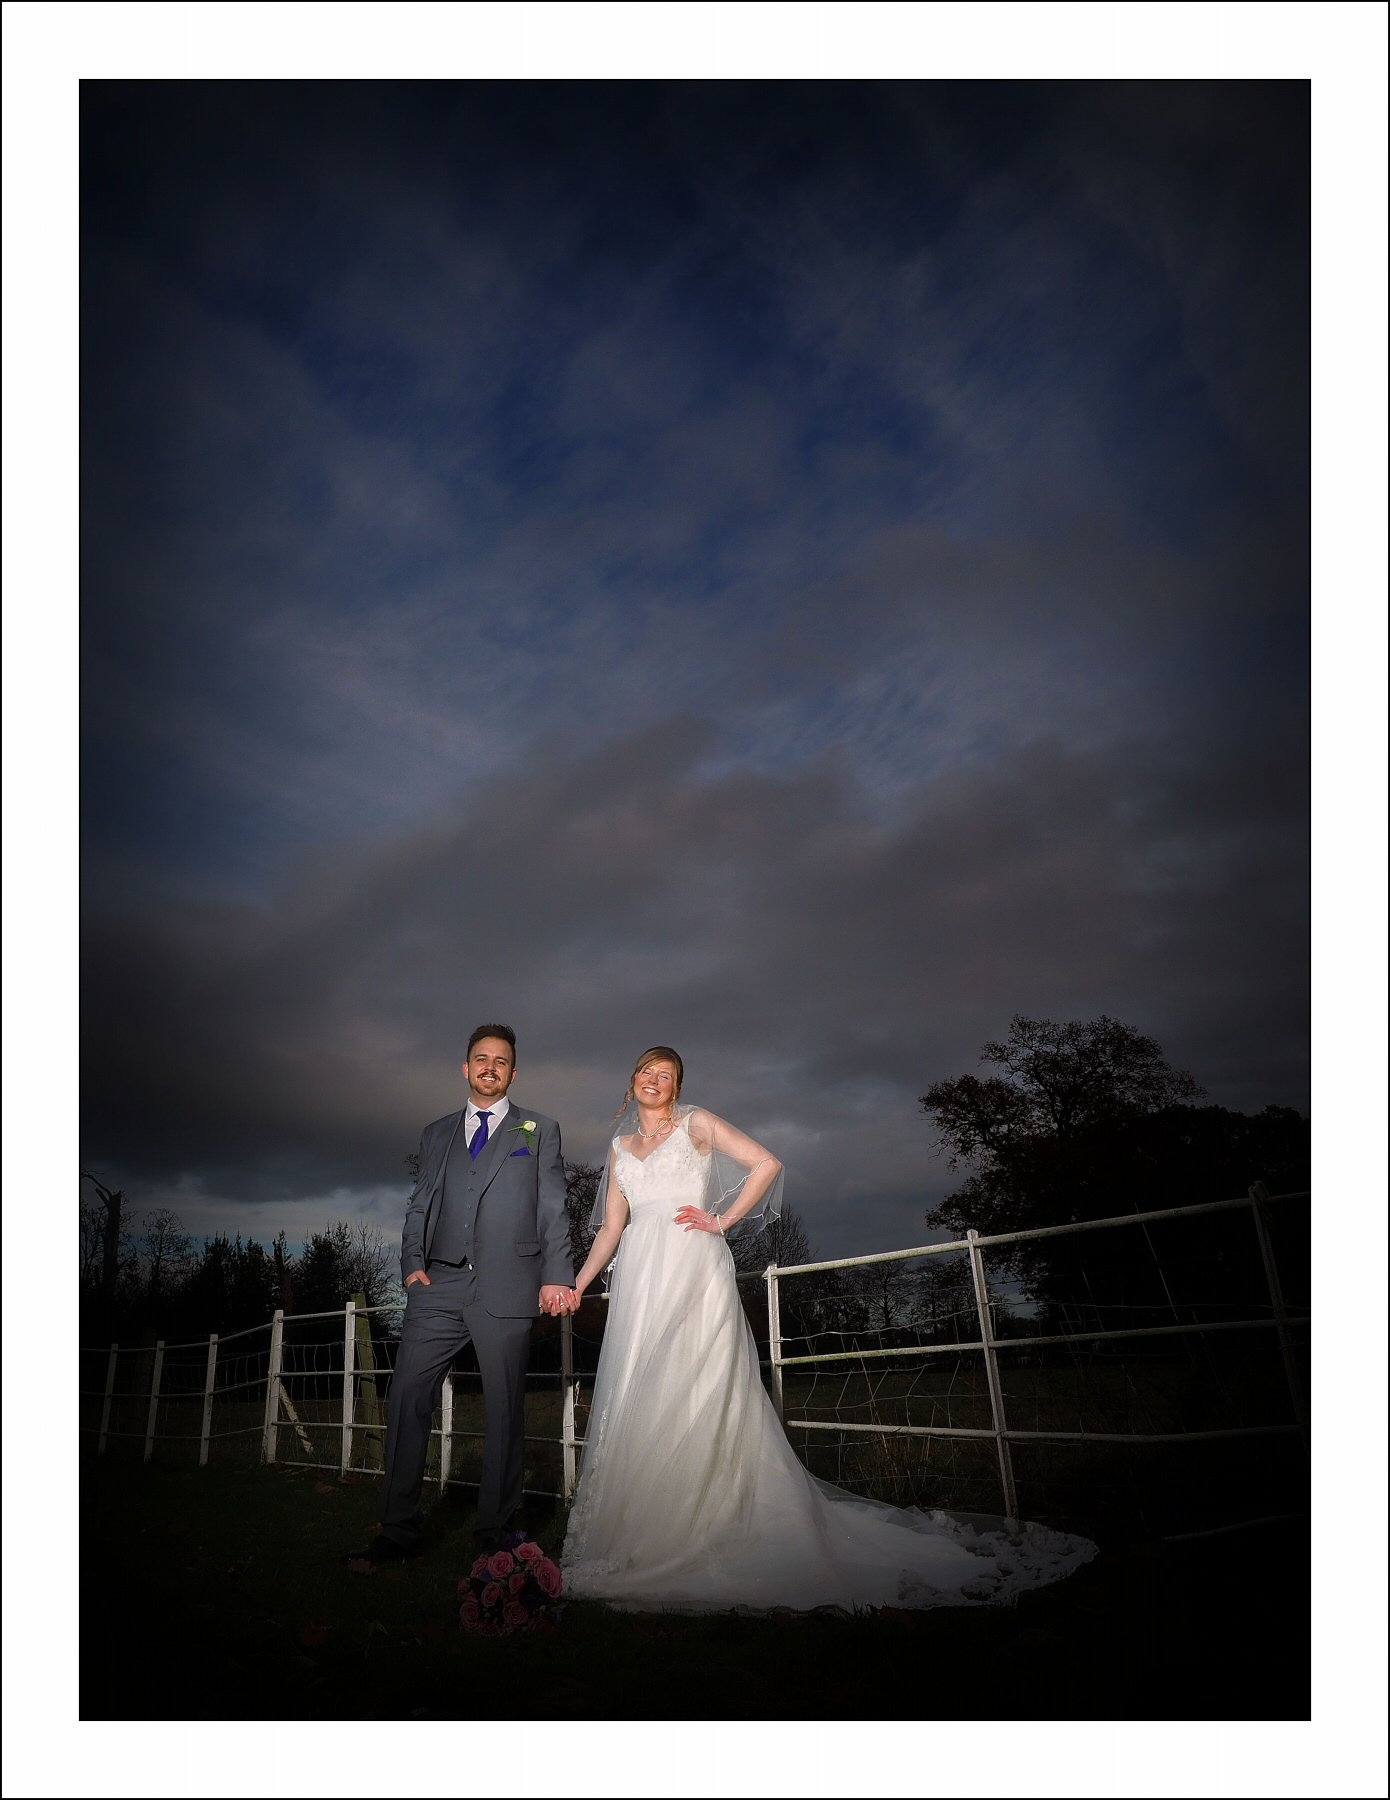 wedding photographer for wedding photography for llyndir Hall